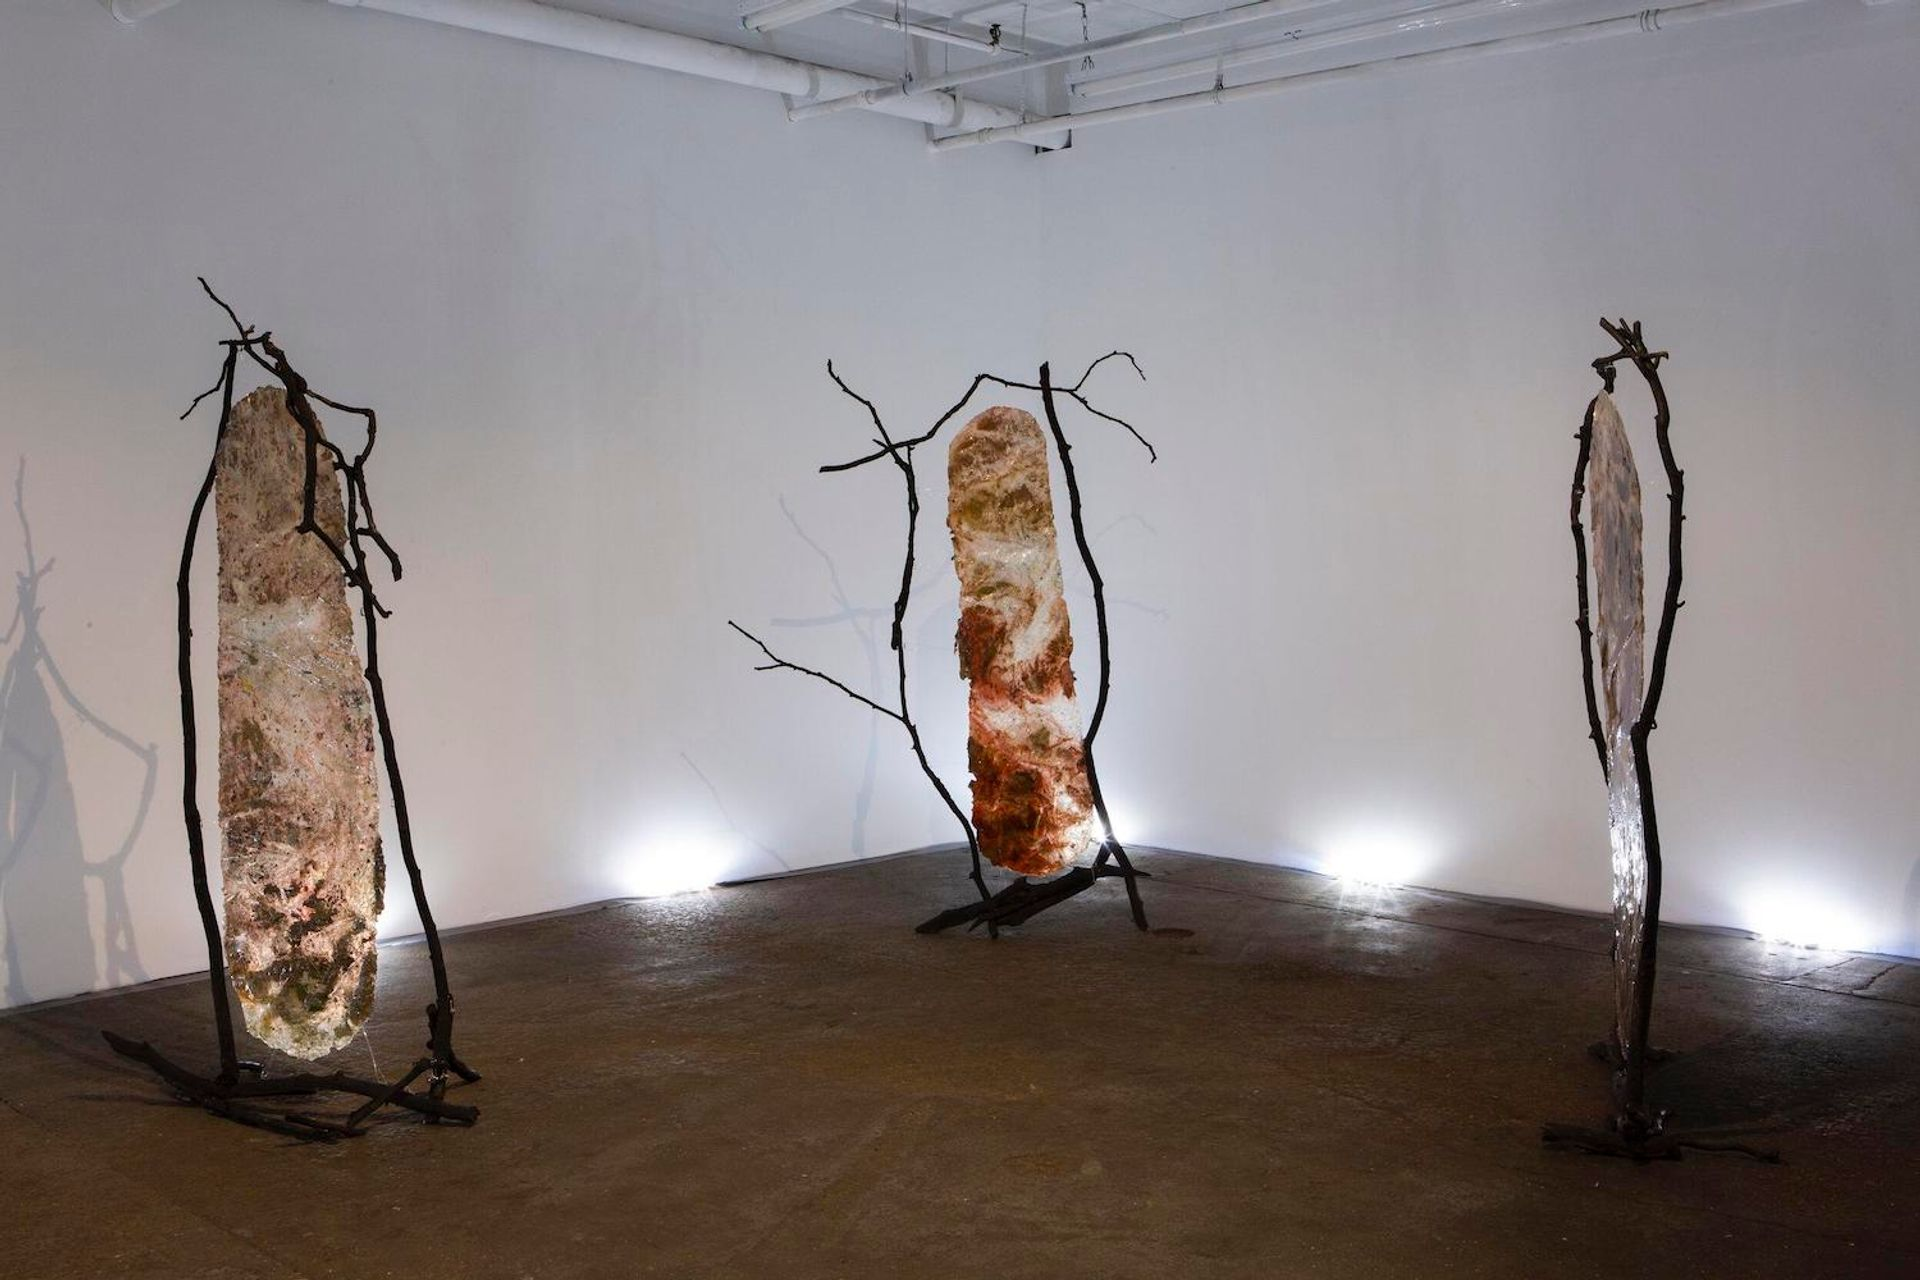 Installation view of Vanessa Thill's exhibition Balsam at Deli Gallery in Brooklyn